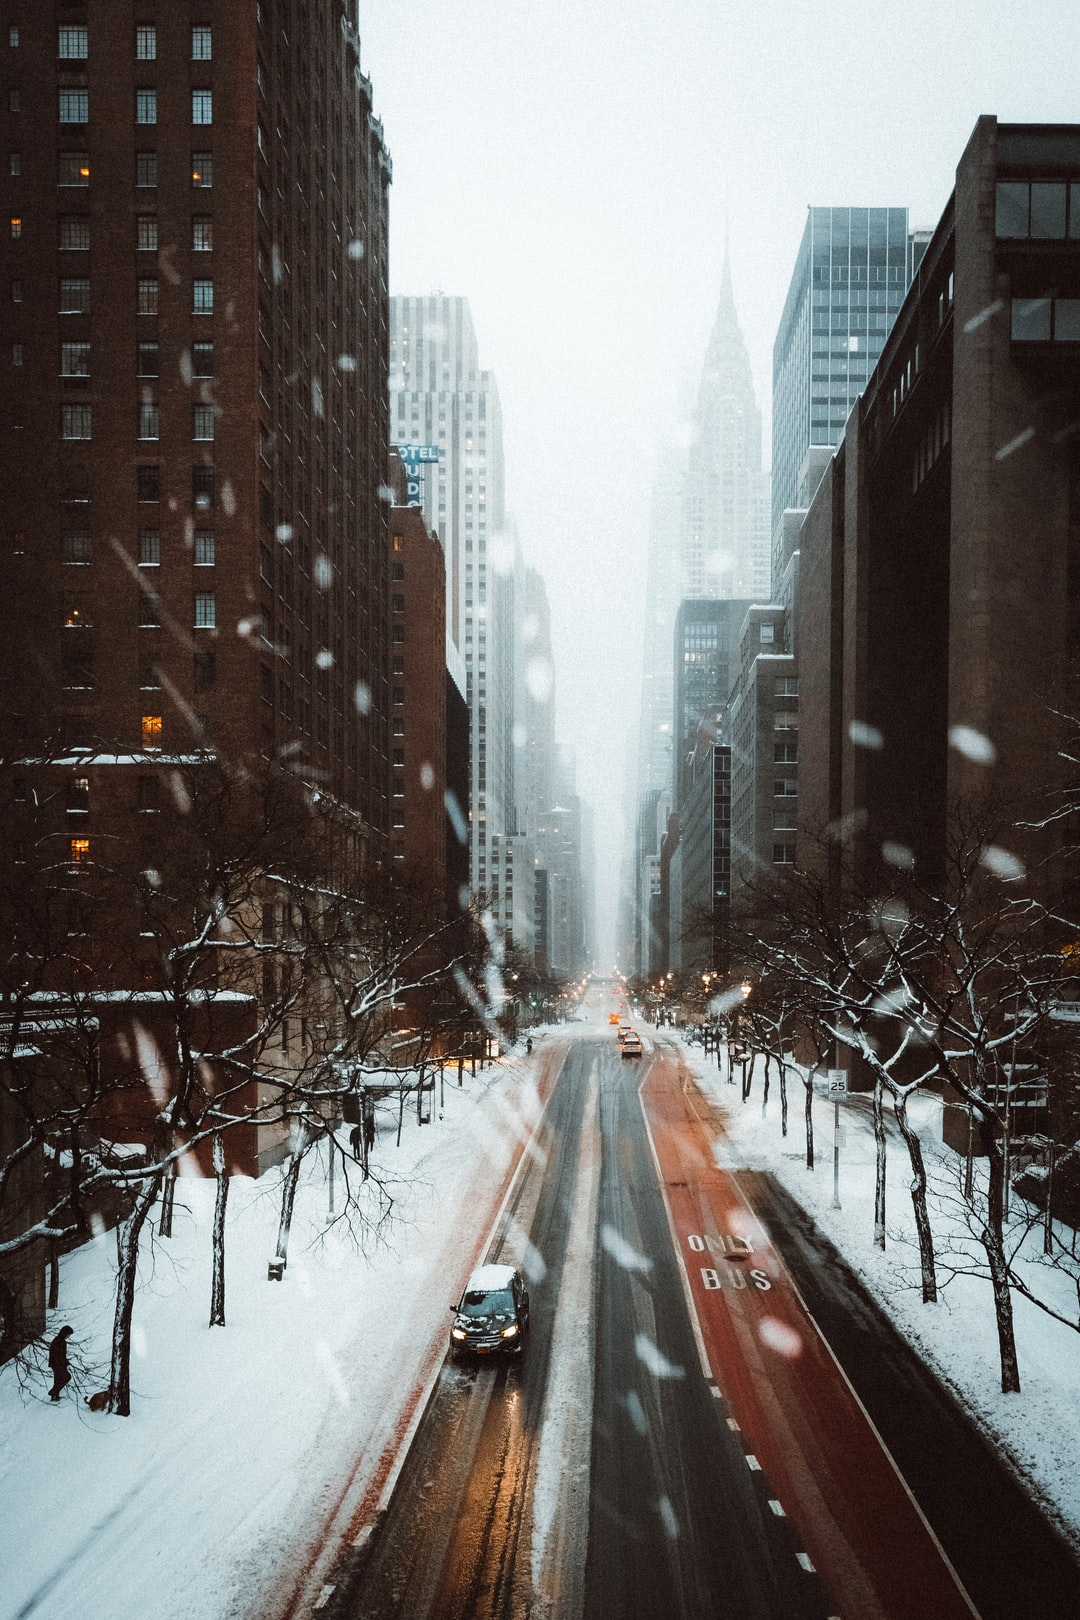 road between high rise buildings during winter